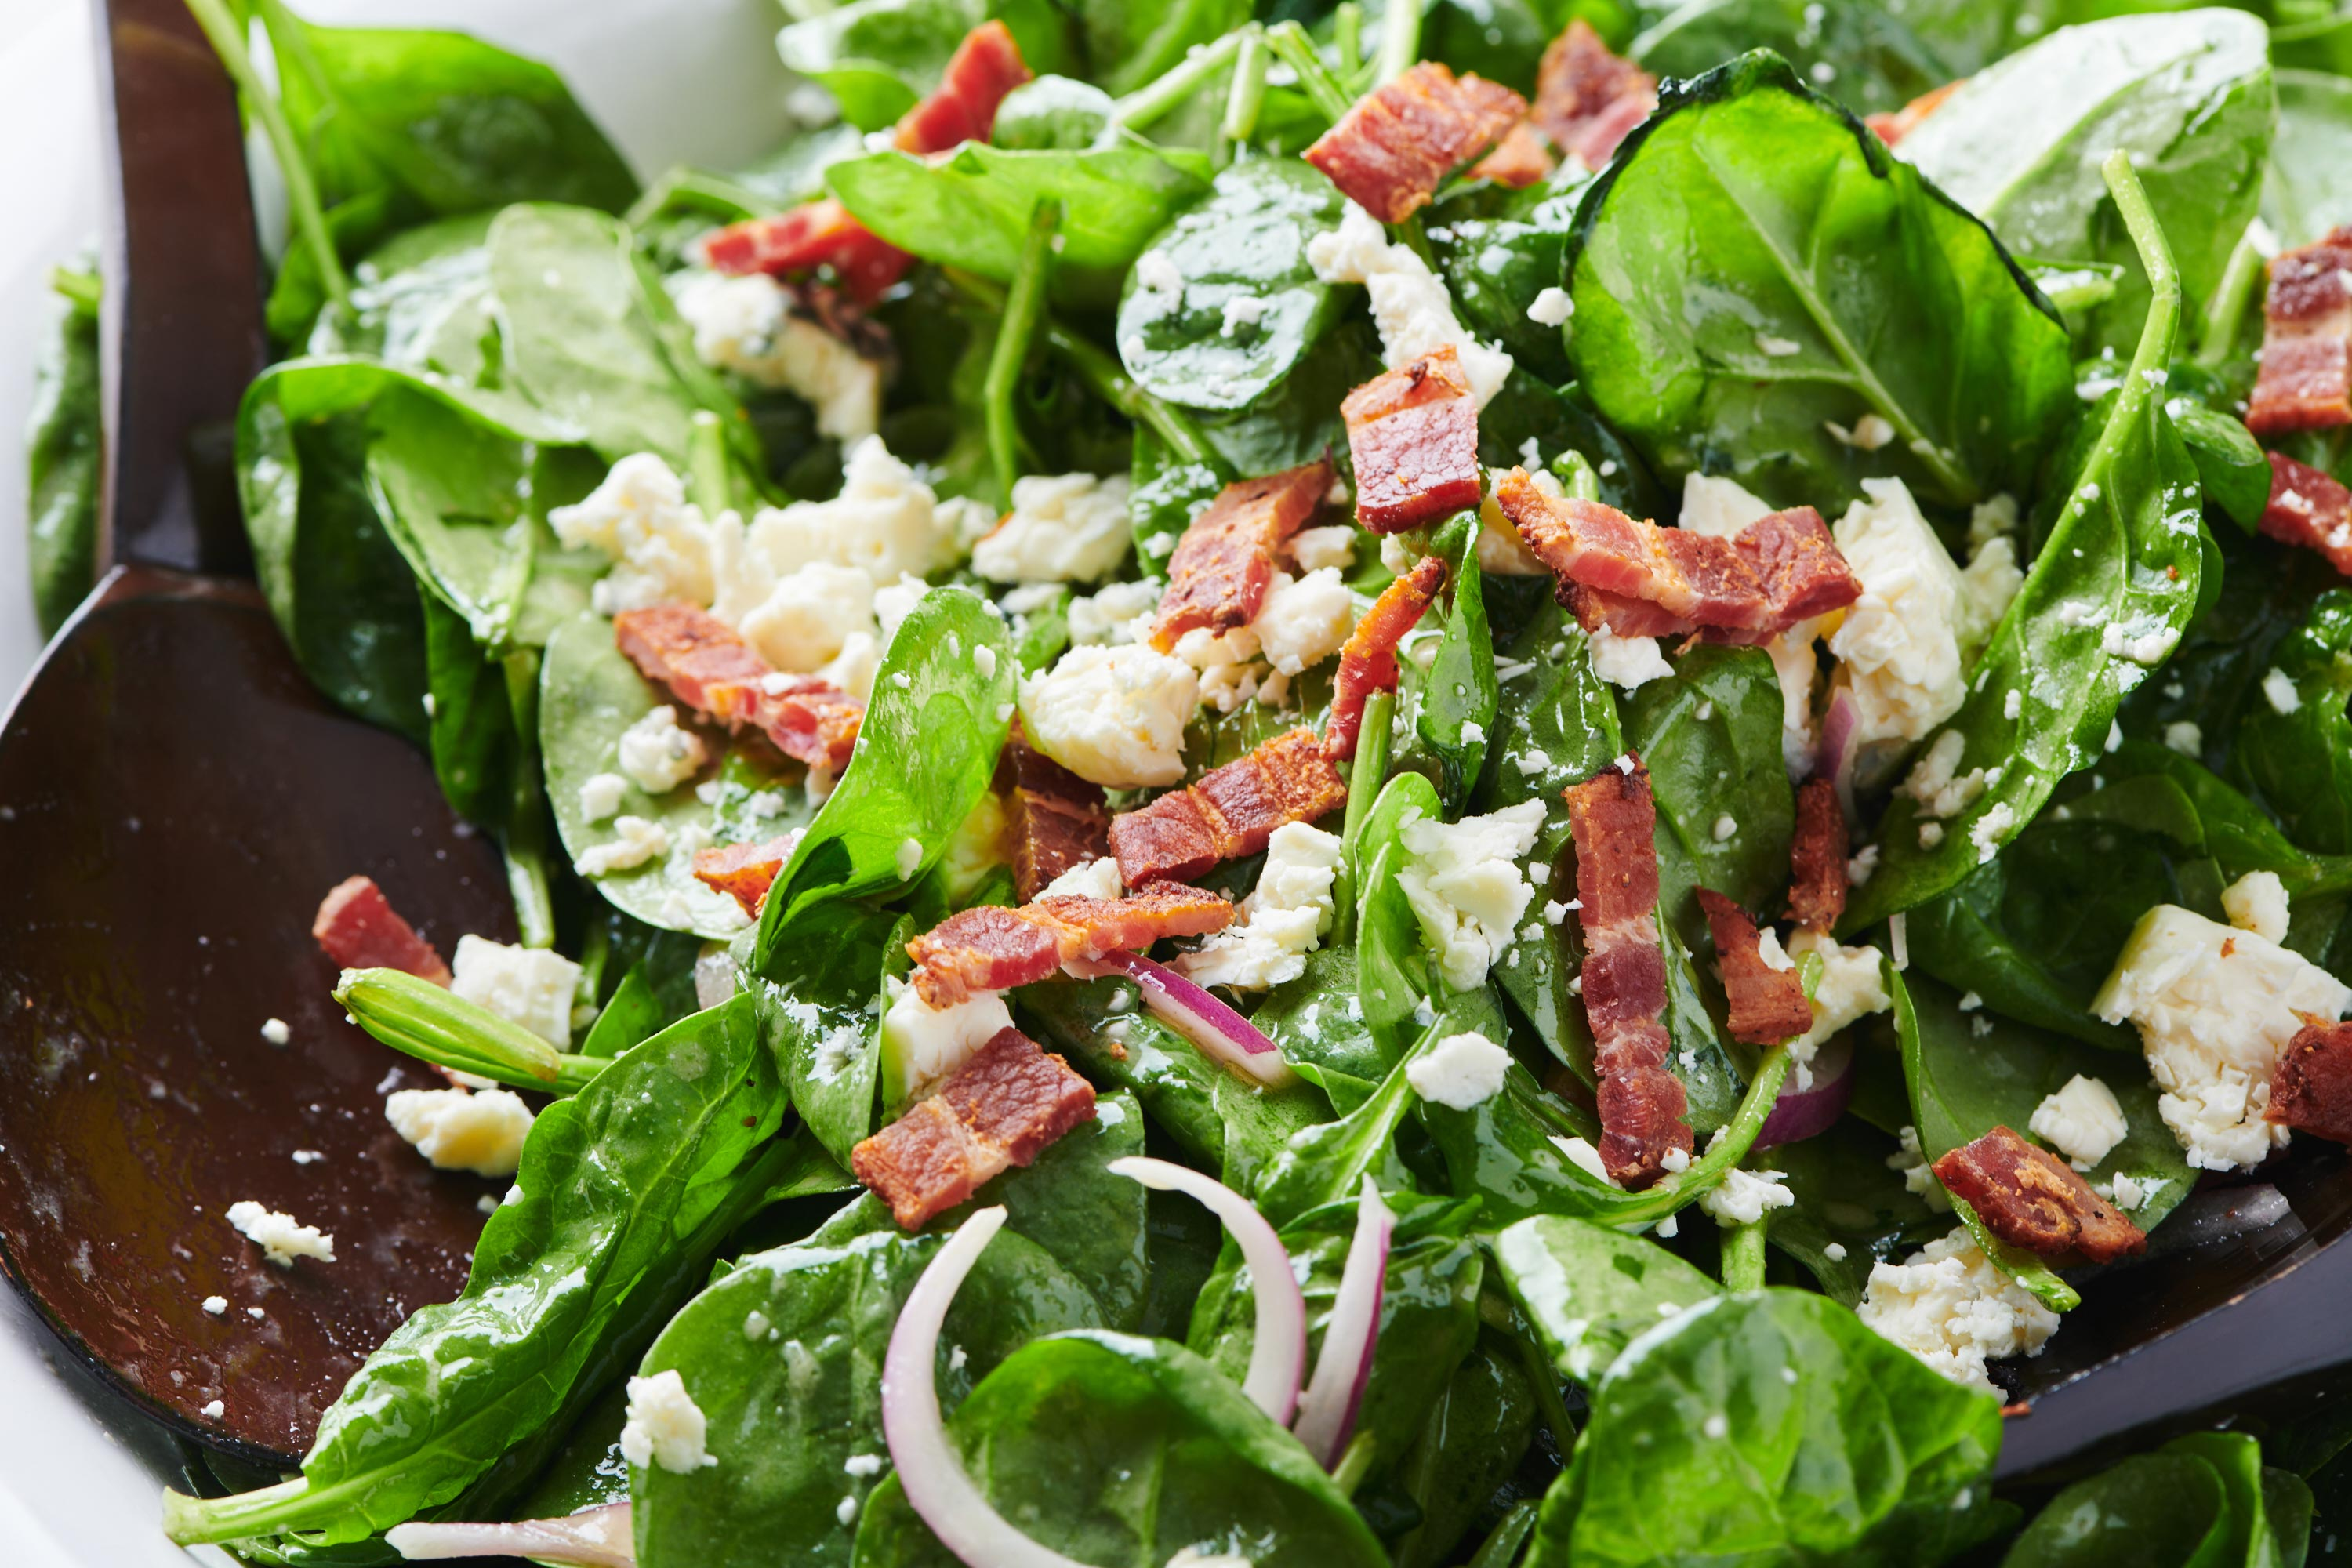 Fully Loaded Spinach Salad With Bacon And Blue Cheese The Mom 100